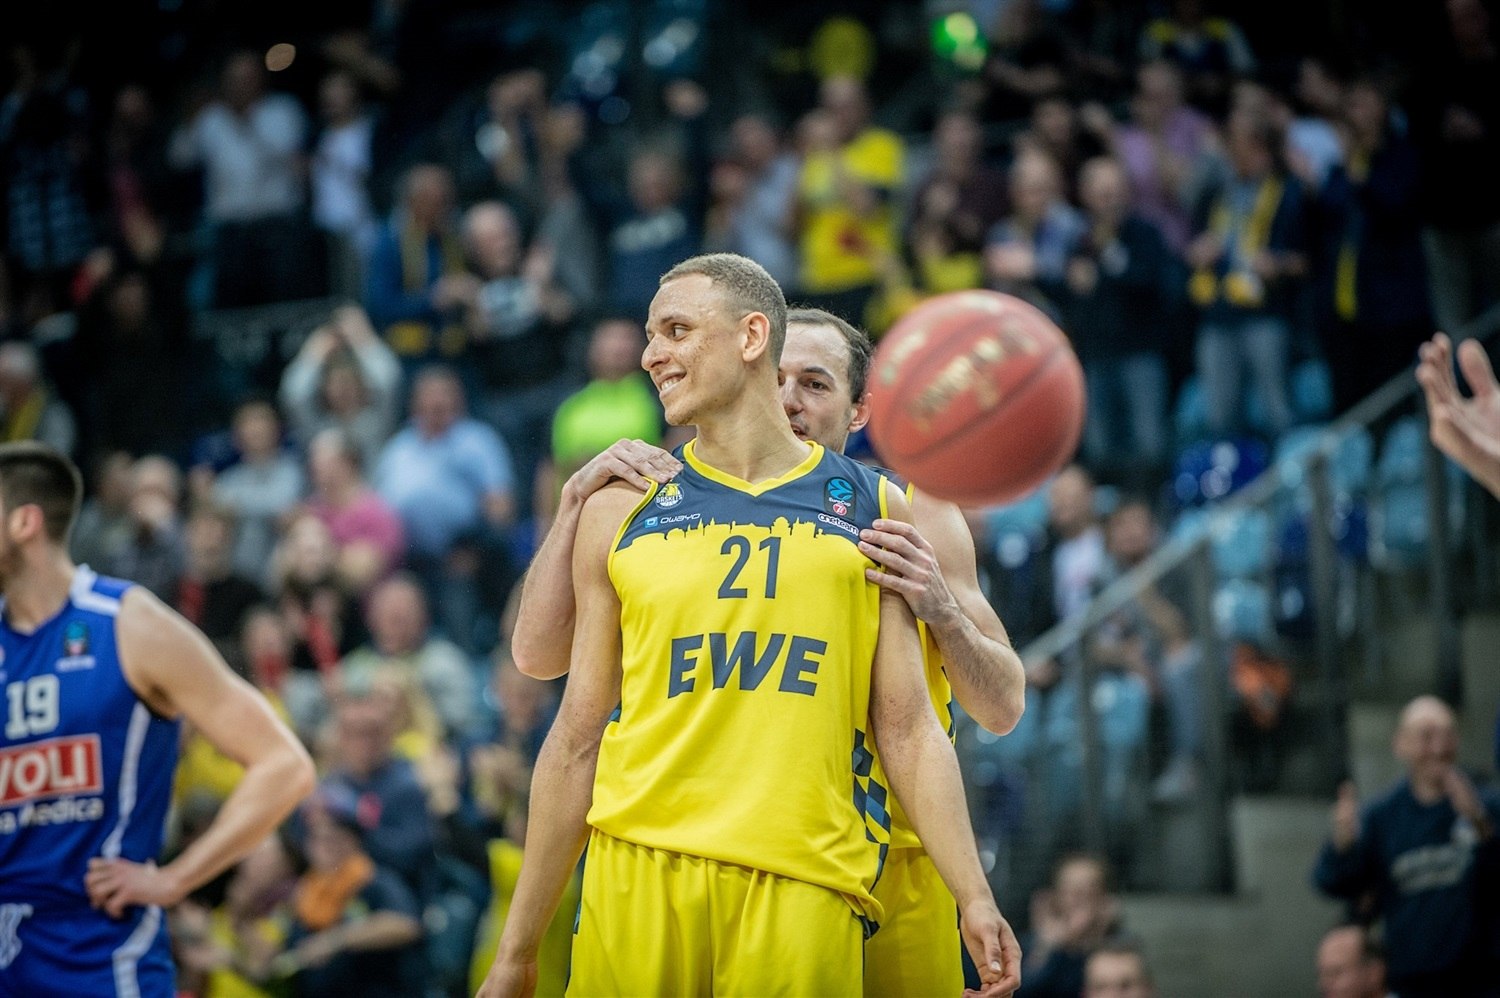 Robin Amaize - EWE Baskets Oldenburg (photo Erik Hillmer) - EC19